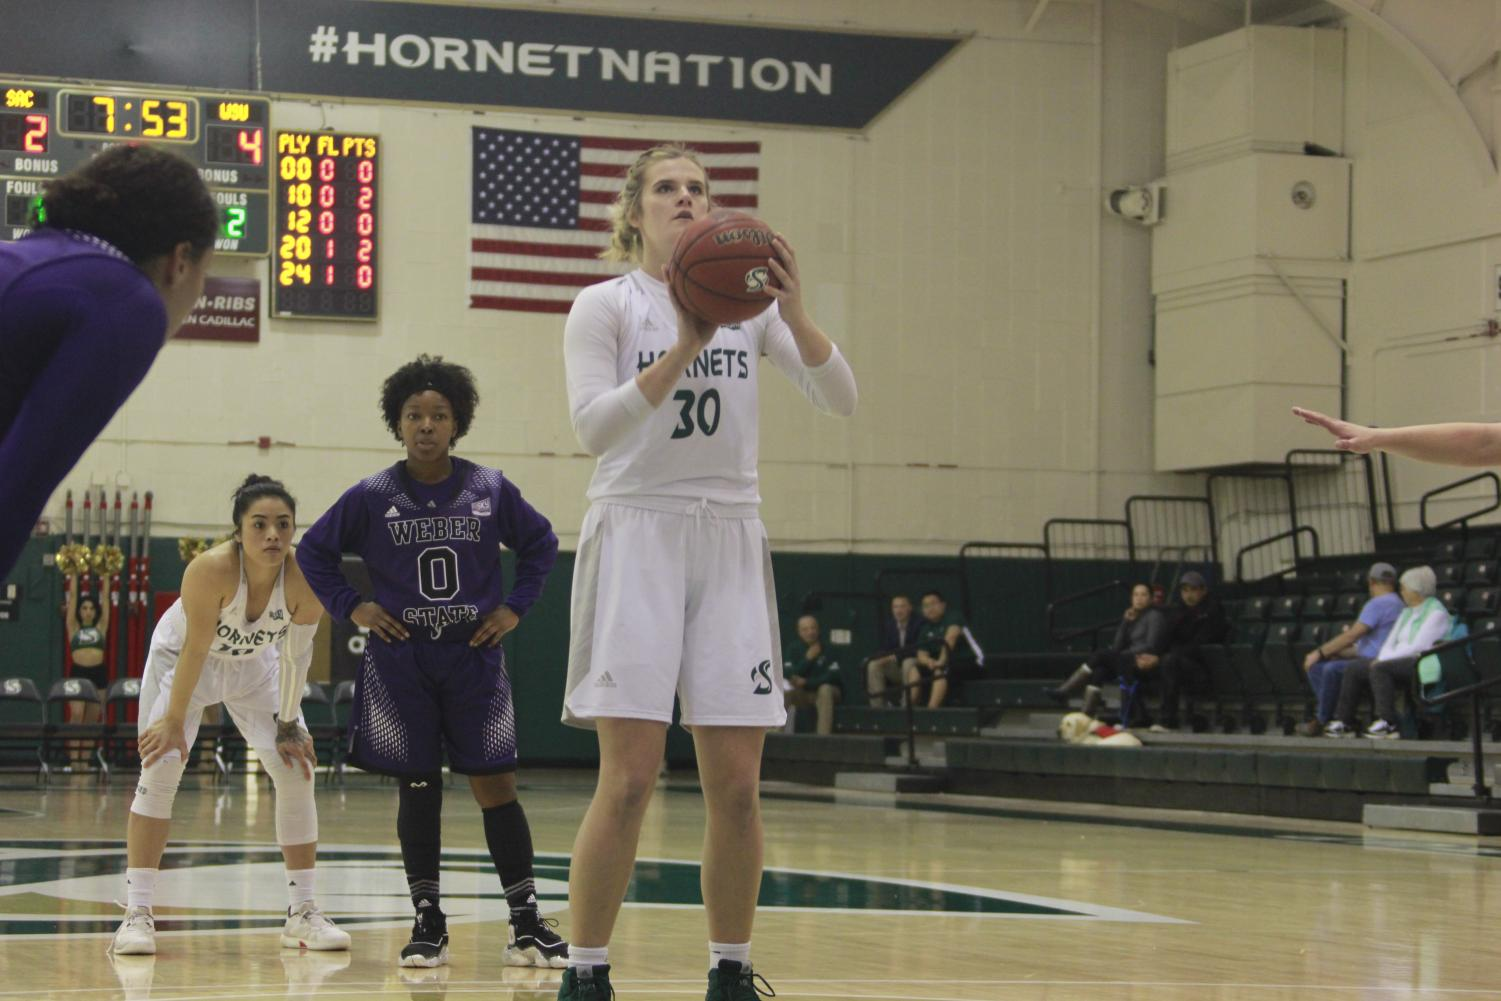 Sac+State+junior+forward+Kennedy+Nicholas+shoots+a+free+throw+during+the+Hornets+77-62+win+over+Weber+State+at+the+Nest+on+Saturday.+Nicholas+had+20+points+and+12+rebounds+%285+offensive%29+and+four+blocks+for+her+fifth+double-double+in+the+last+six+games.+